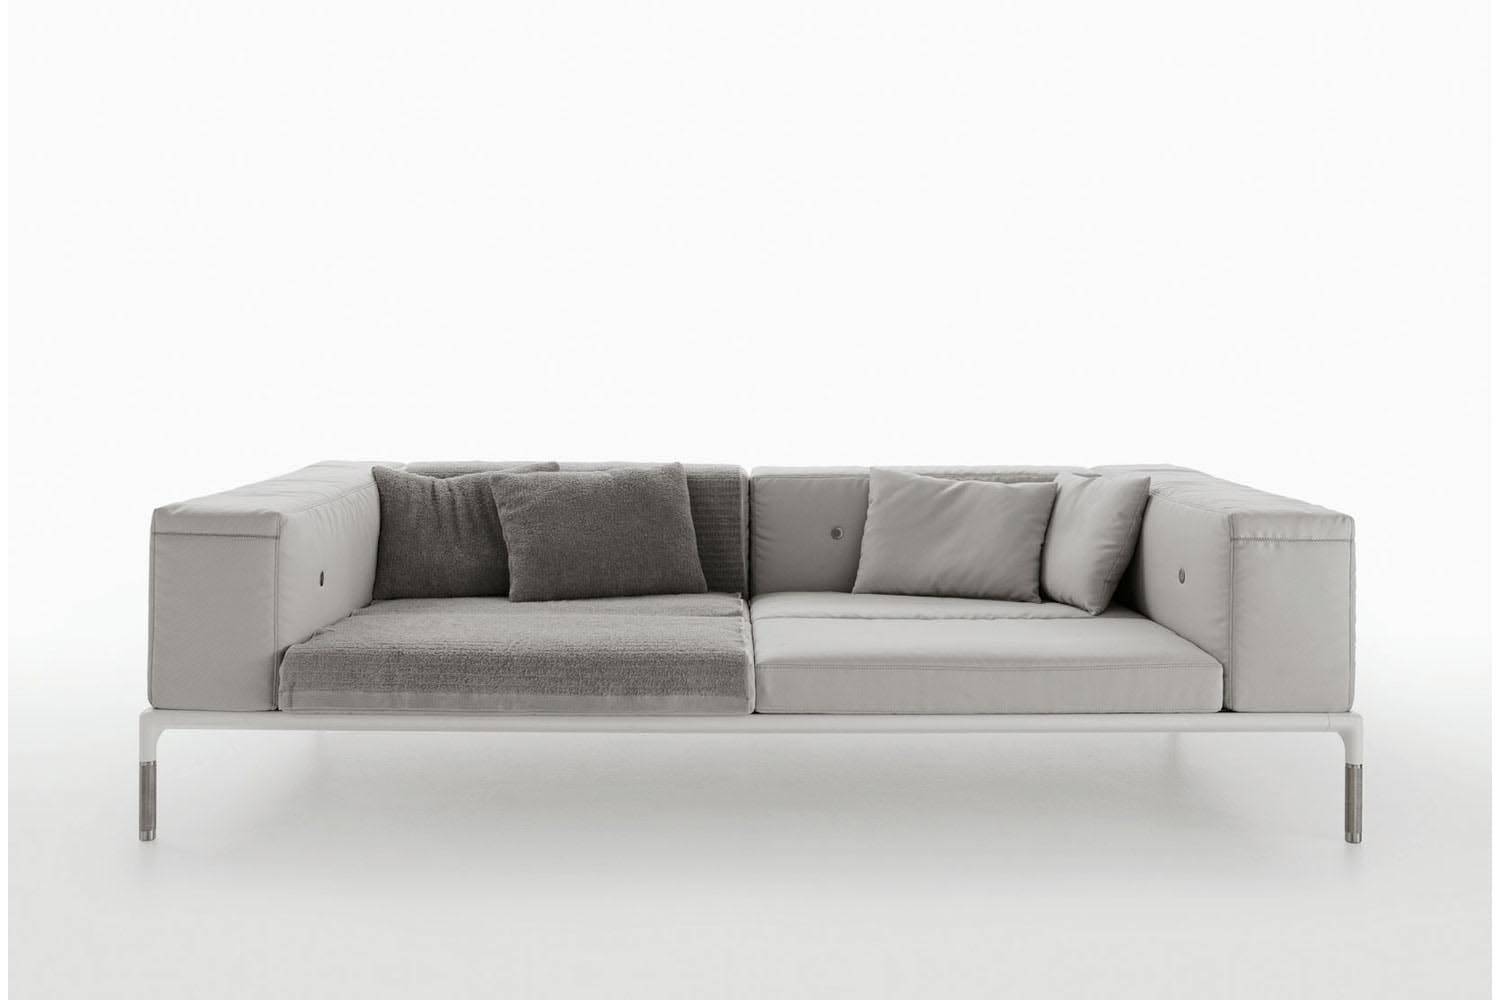 springtime sofa by jean marie massaud for b b italia. Black Bedroom Furniture Sets. Home Design Ideas